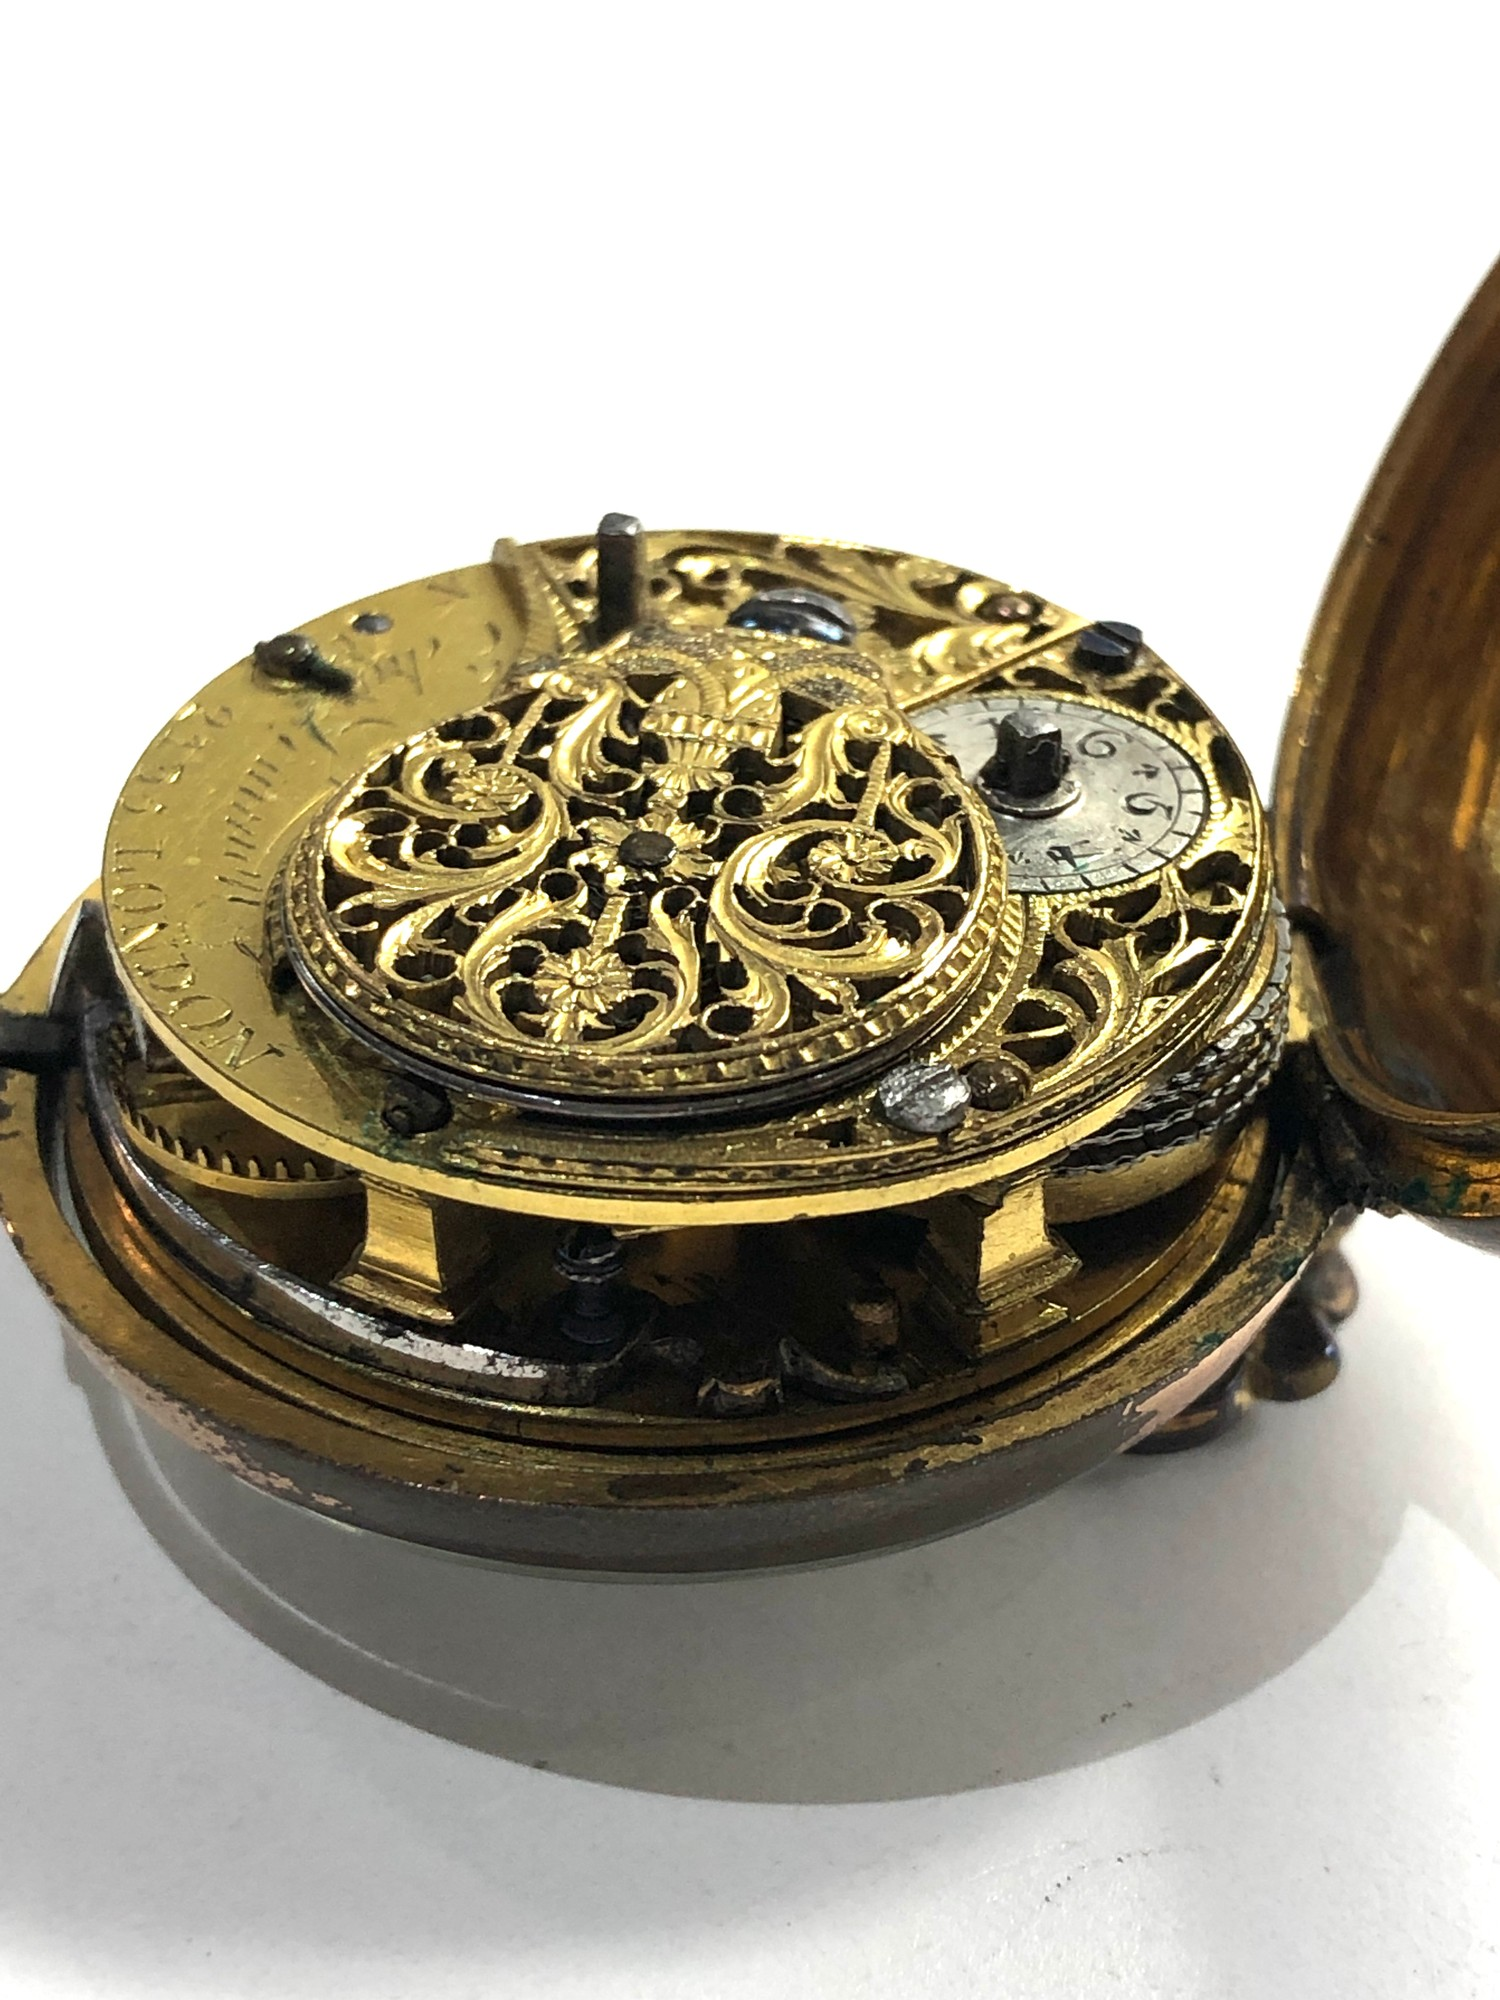 18th century London paircase verge pocket watch the watch does wind and tick dial damaged outer case - Image 4 of 9